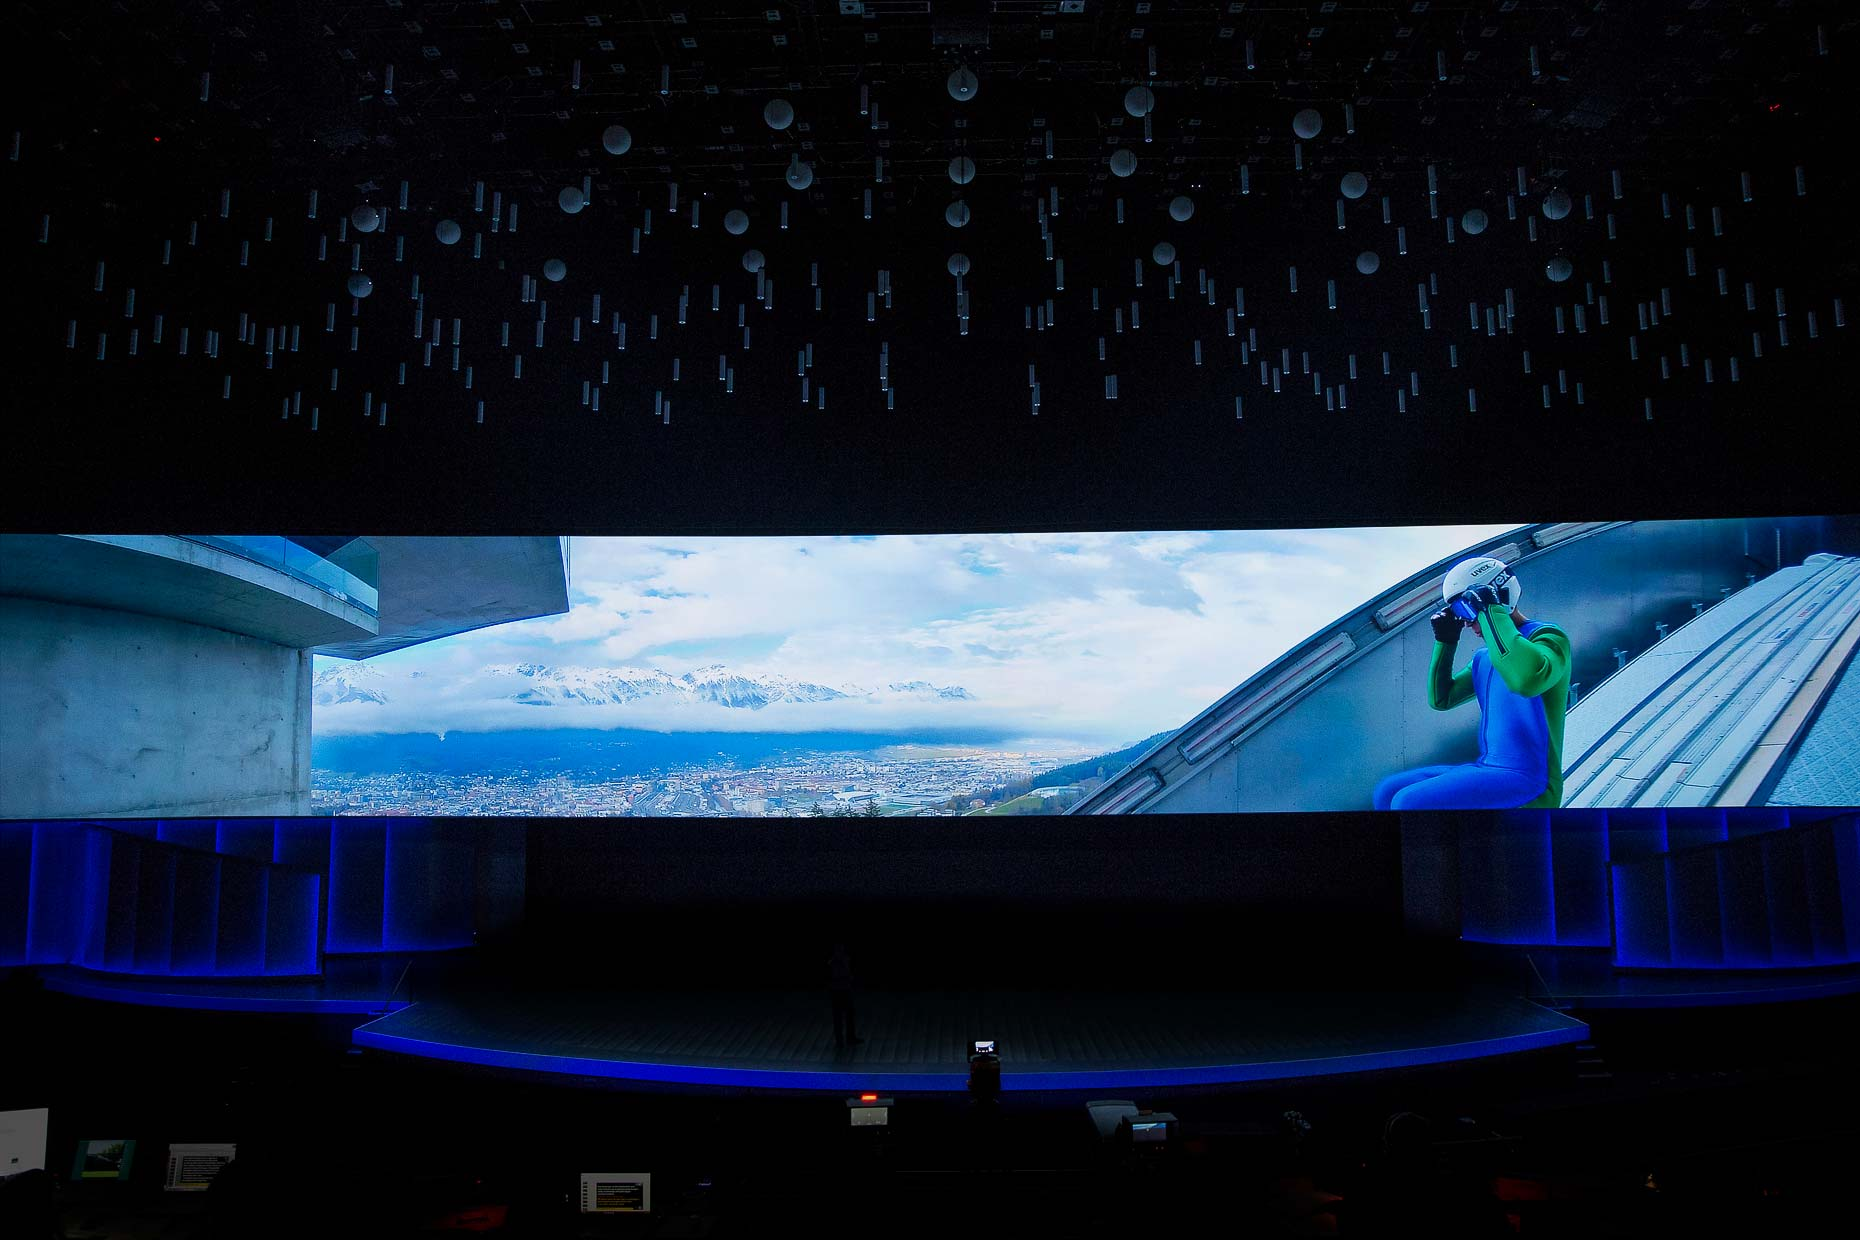 Intel-Keynote-Design-CES2018-VR-Screen-00690b